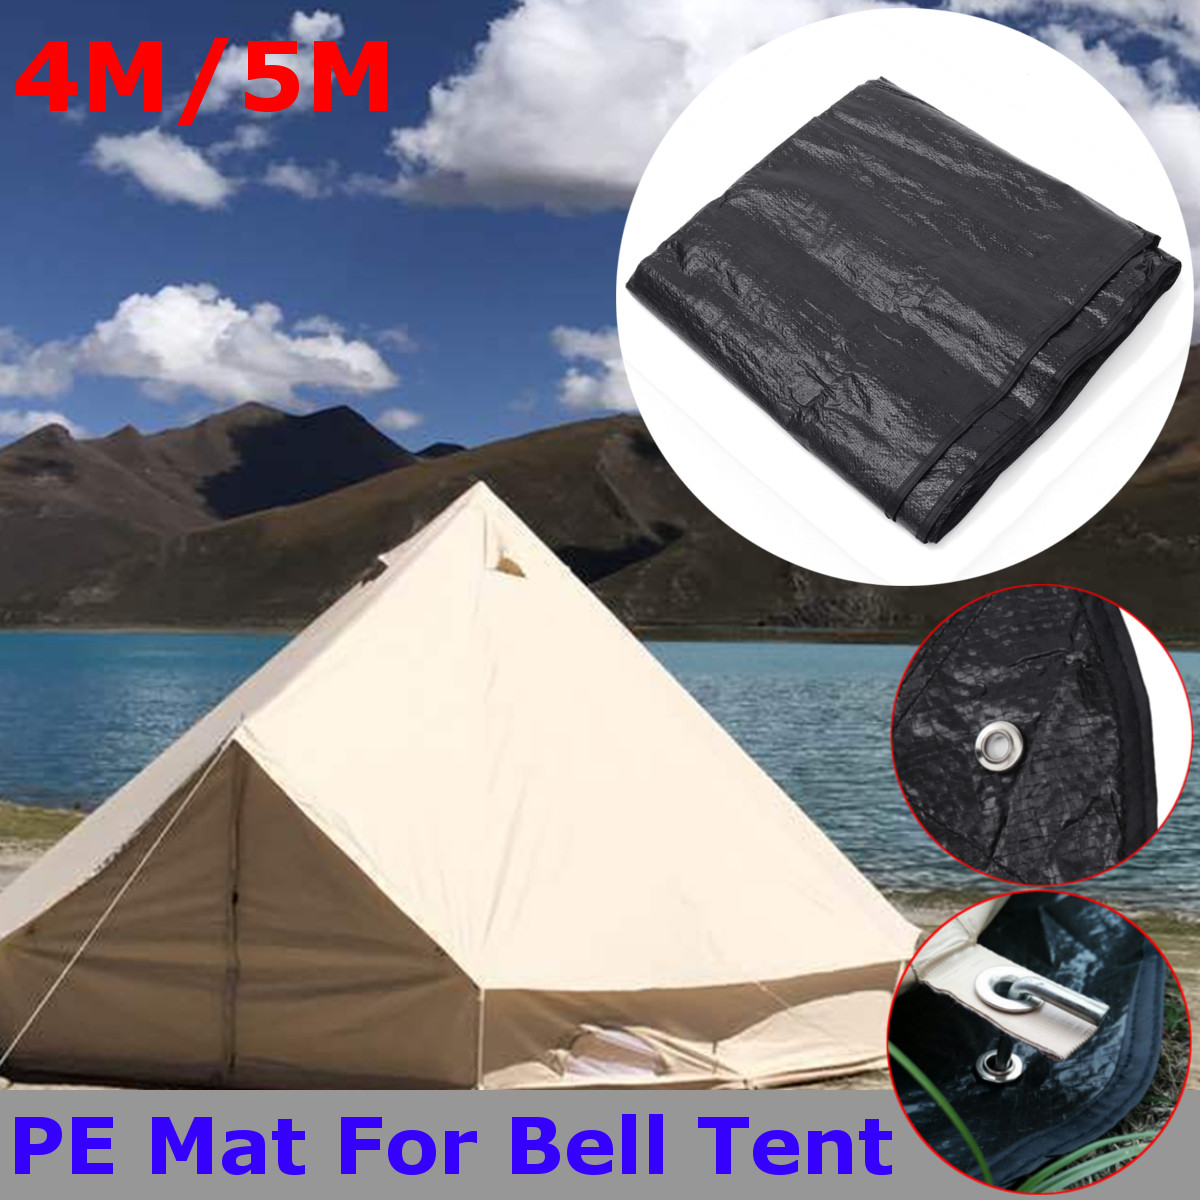 4M/5M Black Waterproof PE Mat Carpet Large Matting Alternative Equipping For Bell Tent Outdoor Camping Hiking  Tent Accessories4M/5M Black Waterproof PE Mat Carpet Large Matting Alternative Equipping For Bell Tent Outdoor Camping Hiking  Tent Accessories